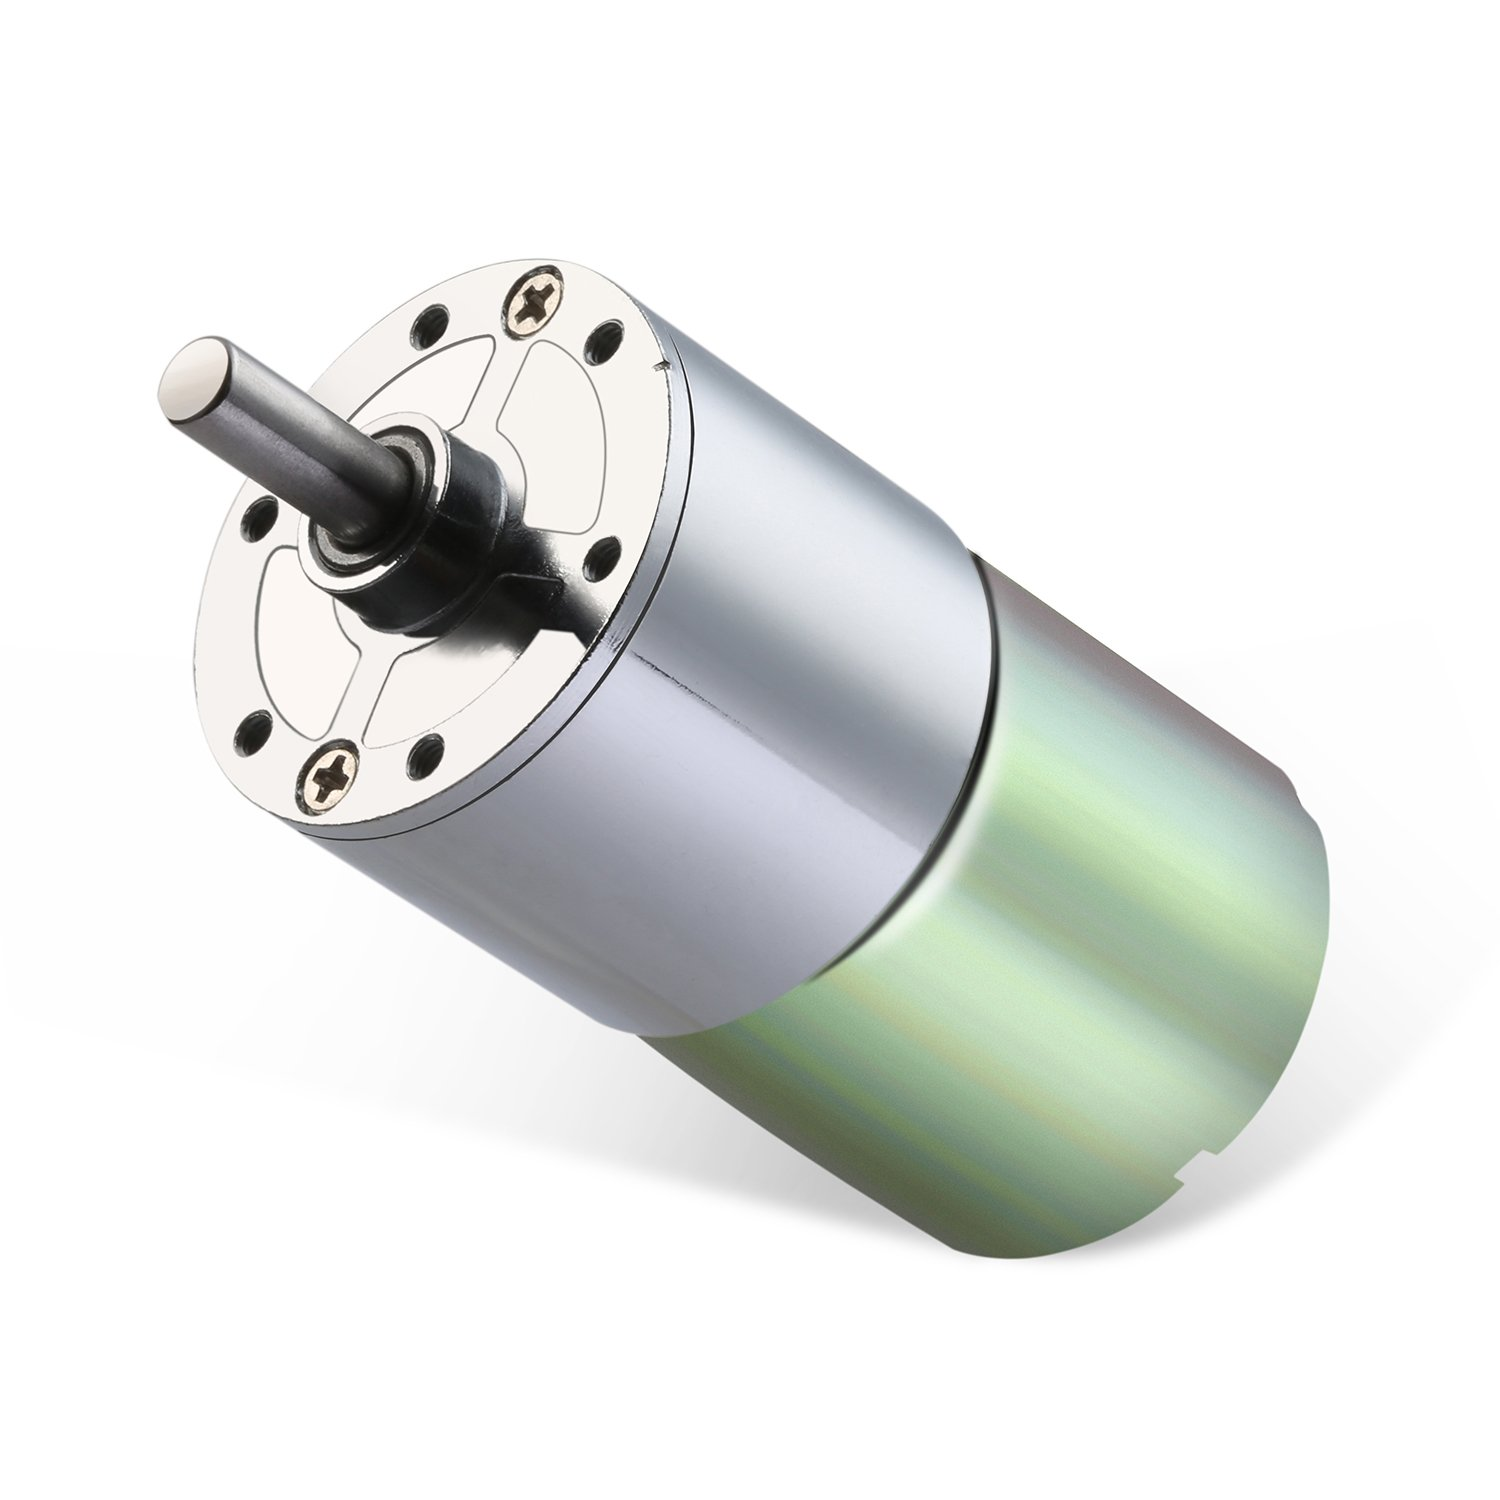 Greartisan DC 12V 20RPM Gear Motor High Torque Electric Micro Speed Reduction Geared Motor Centric Output Shaft 37mm Diameter Gearbox